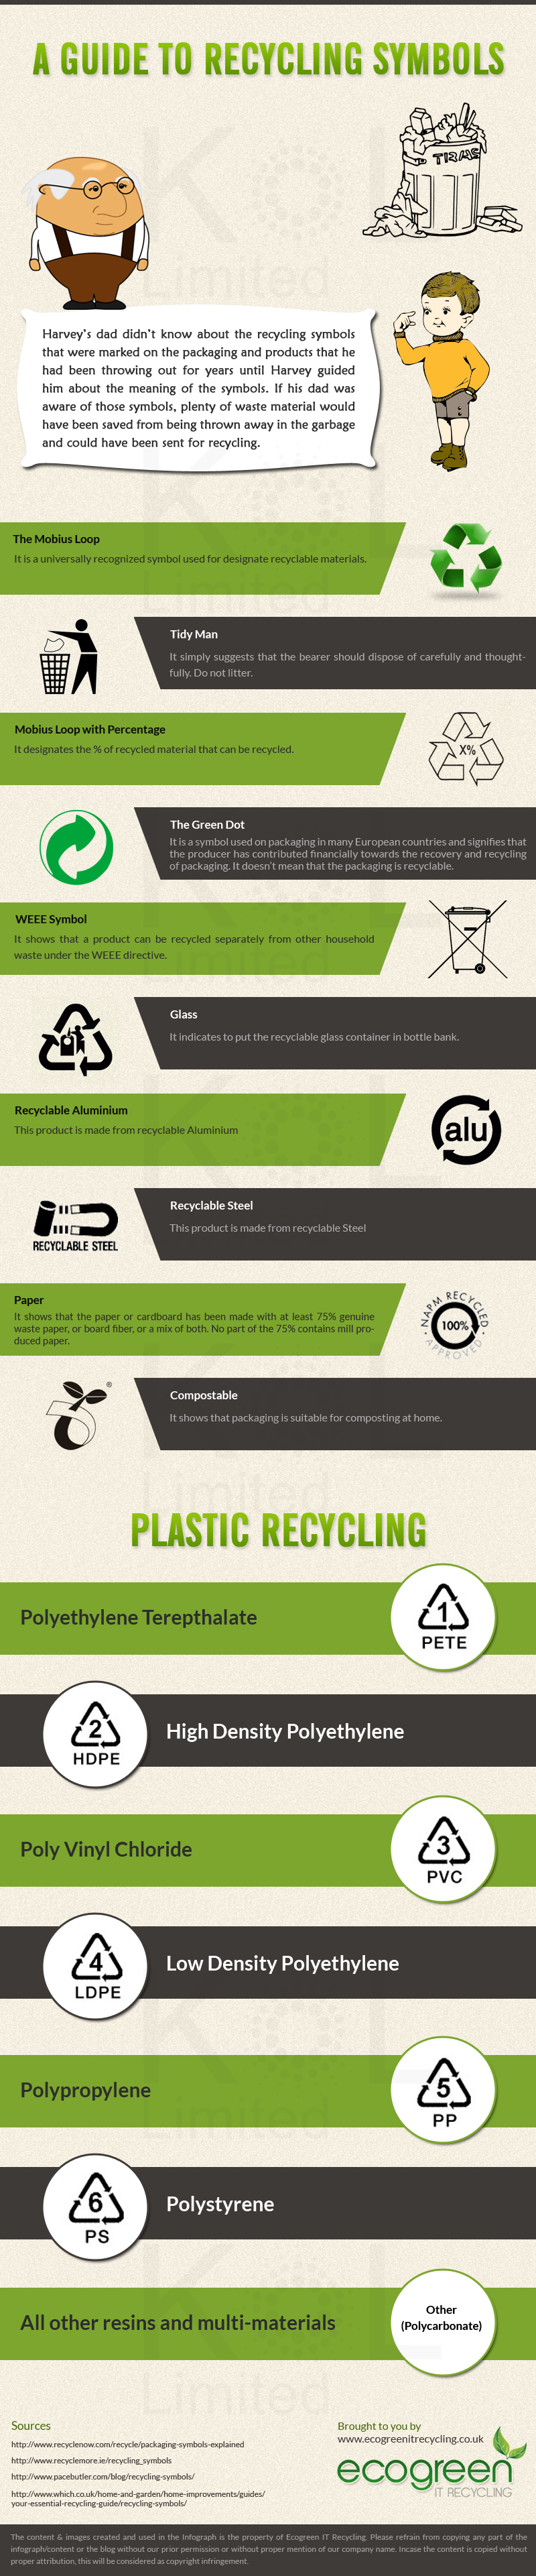 A Guide To Recycling Symbols By Eco Green It Recycling Shit Hot